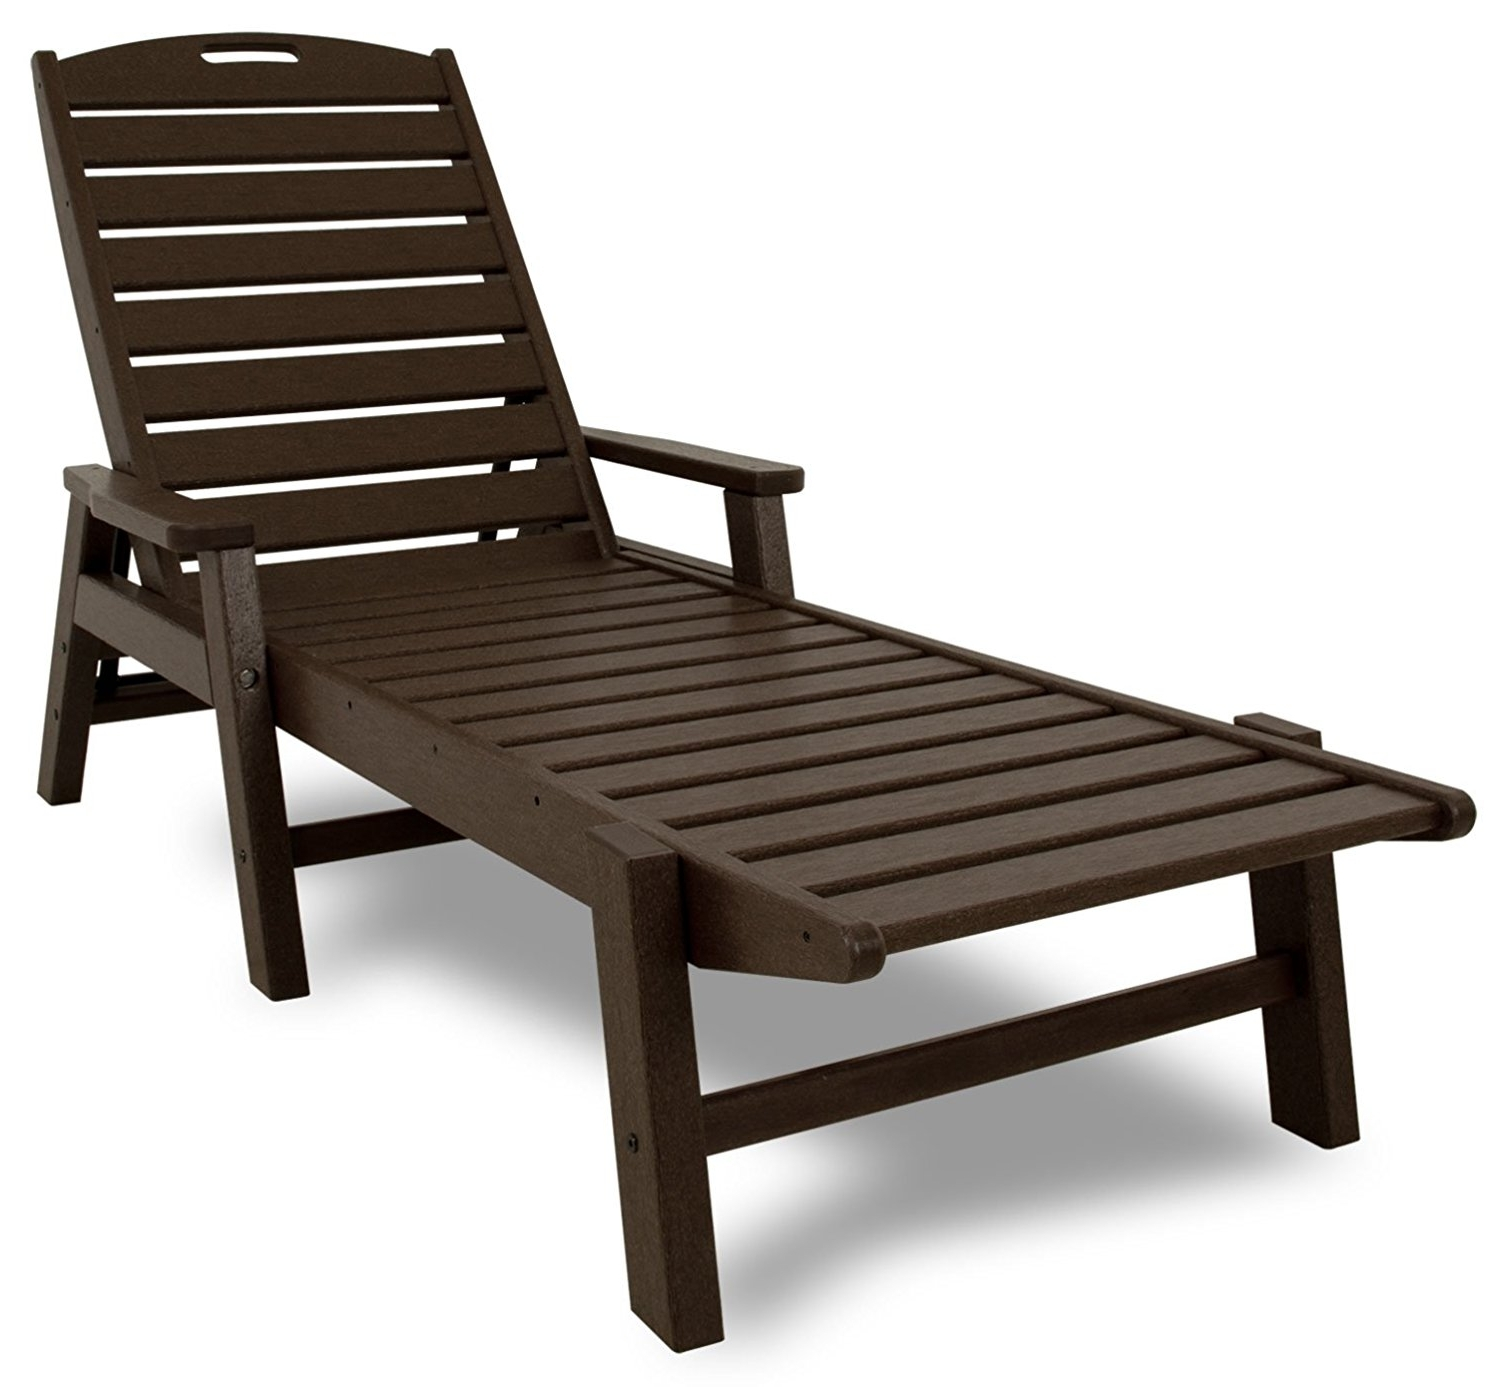 Widely Used Amazon : Polywood Ncc2280Ma Nautical Chaise With Arms With Regard To Chaise Lounge Chairs (View 8 of 15)